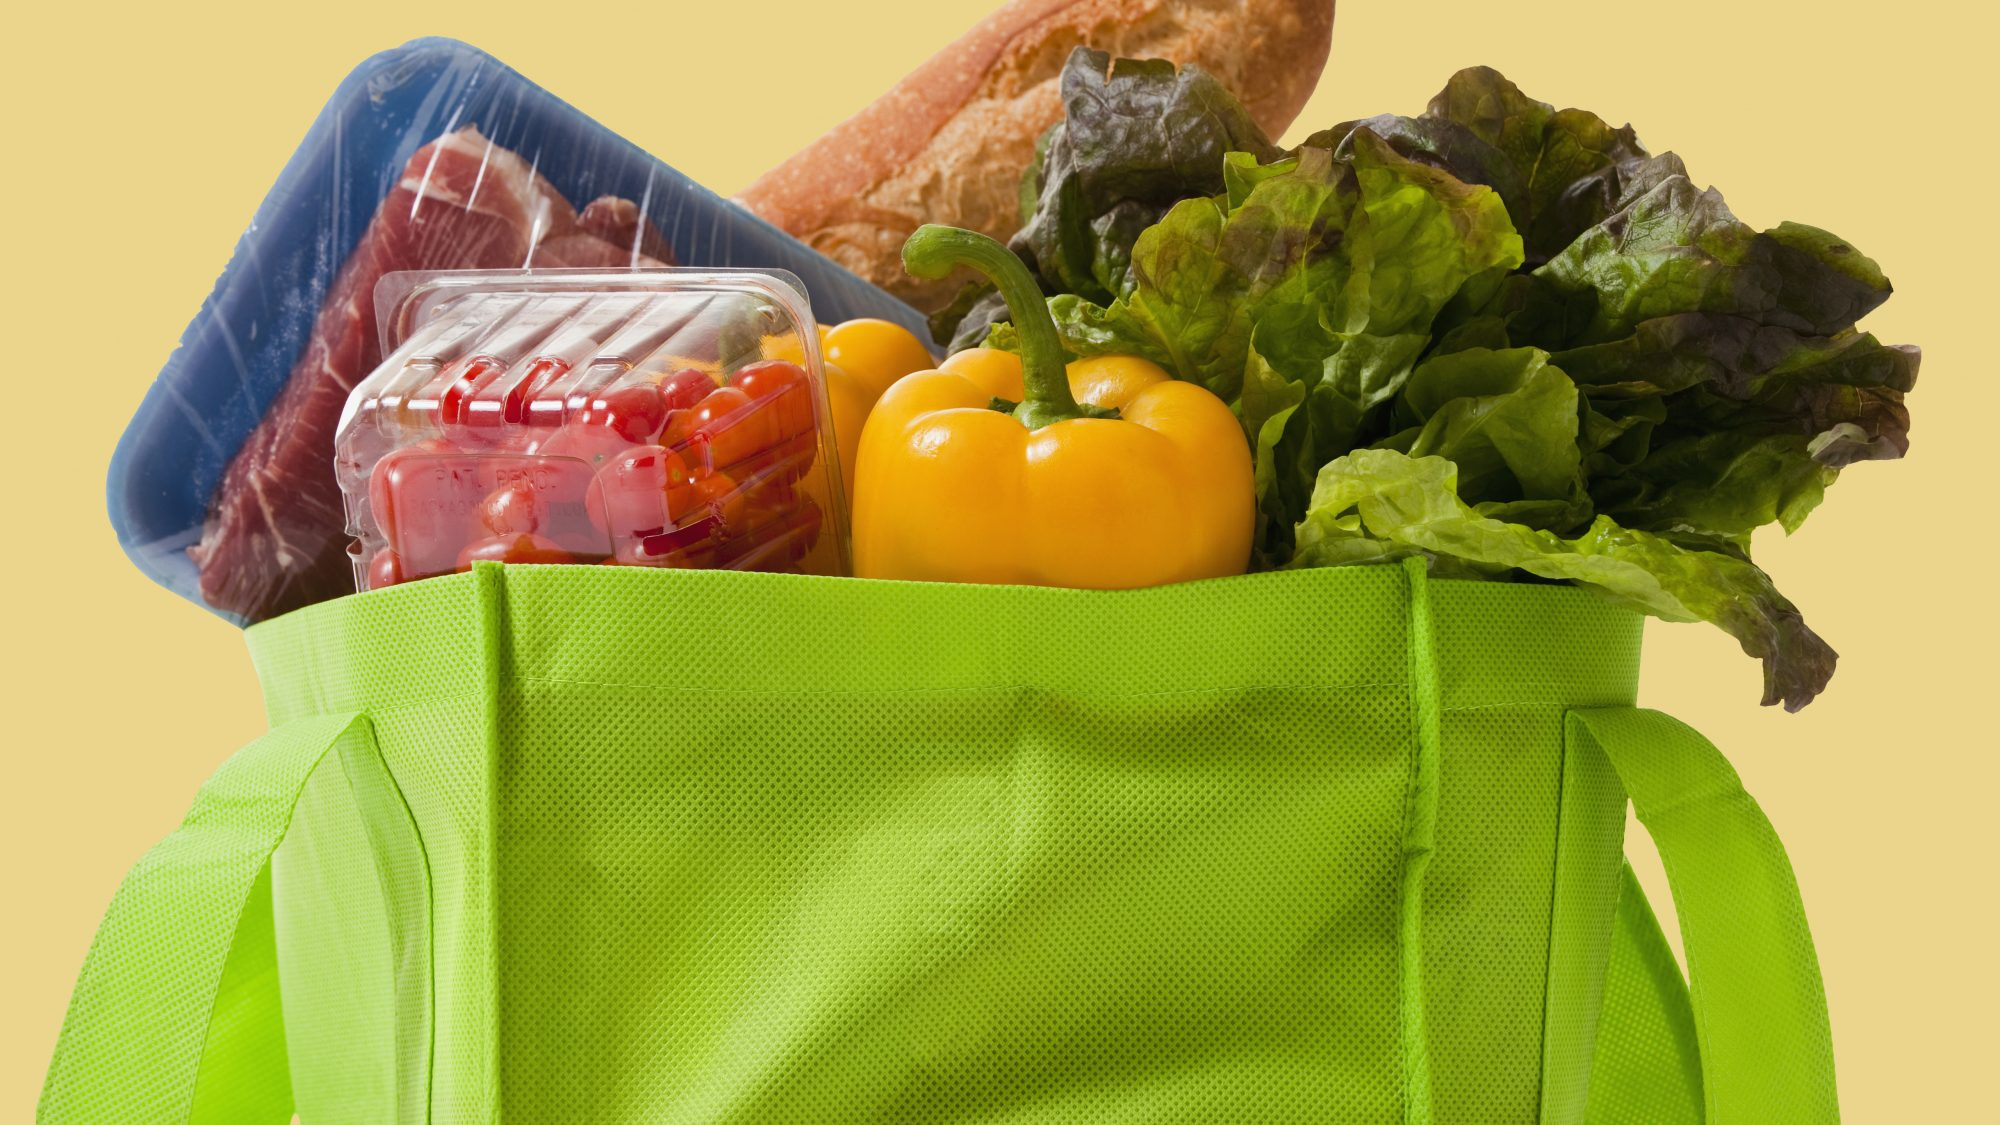 Instacart-shopping-tips: grocery bag with food